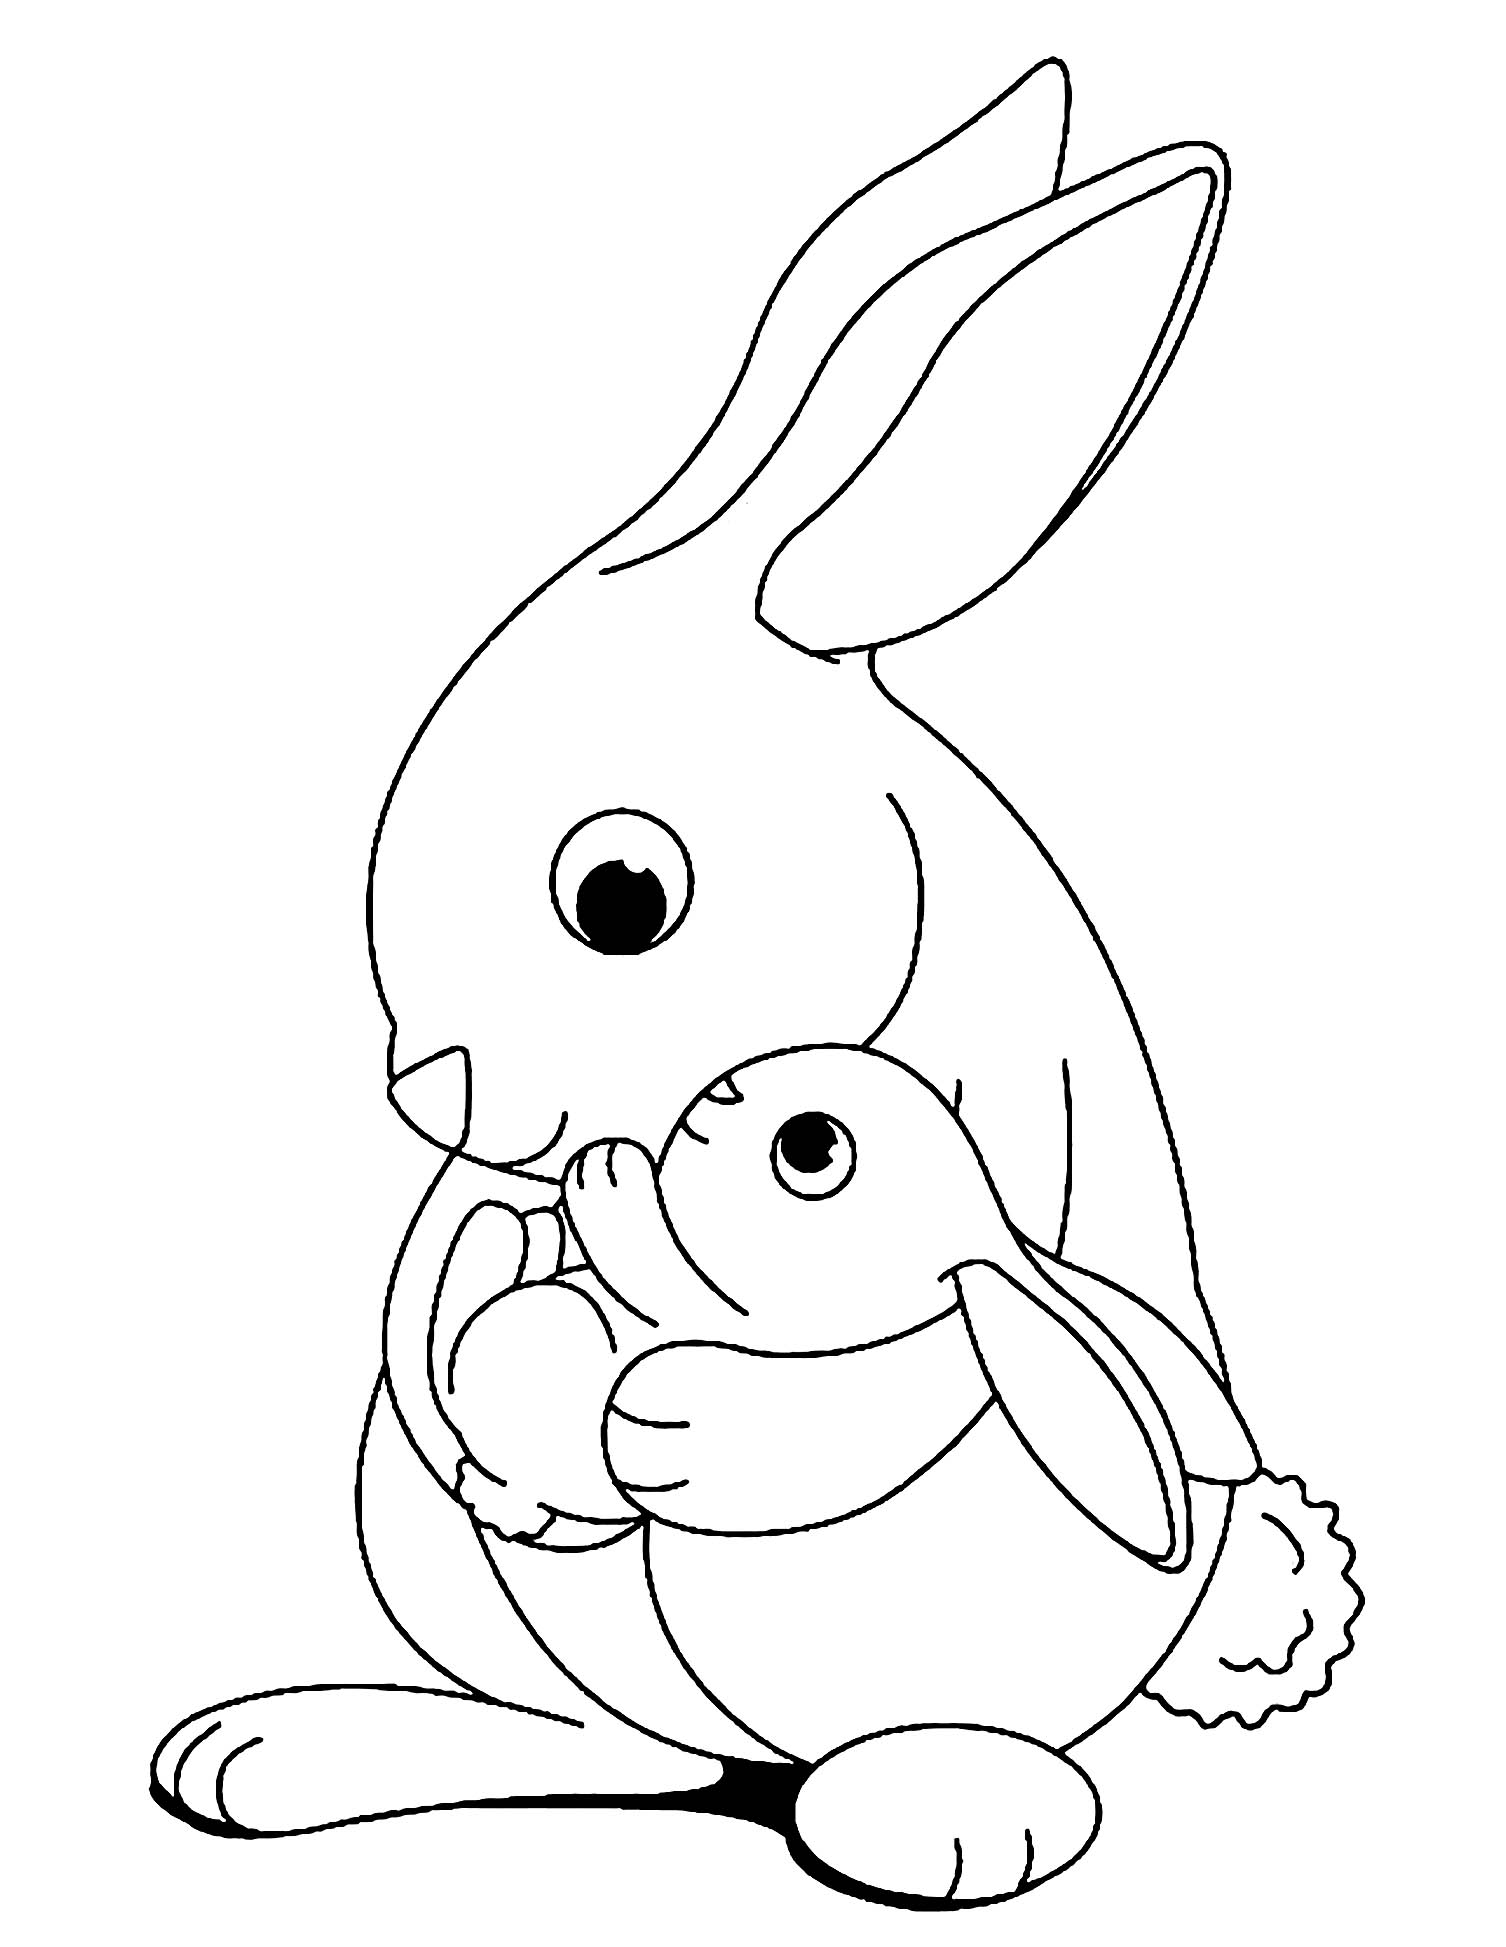 rabbit images for colouring bunny coloring pages best coloring pages for kids colouring images for rabbit